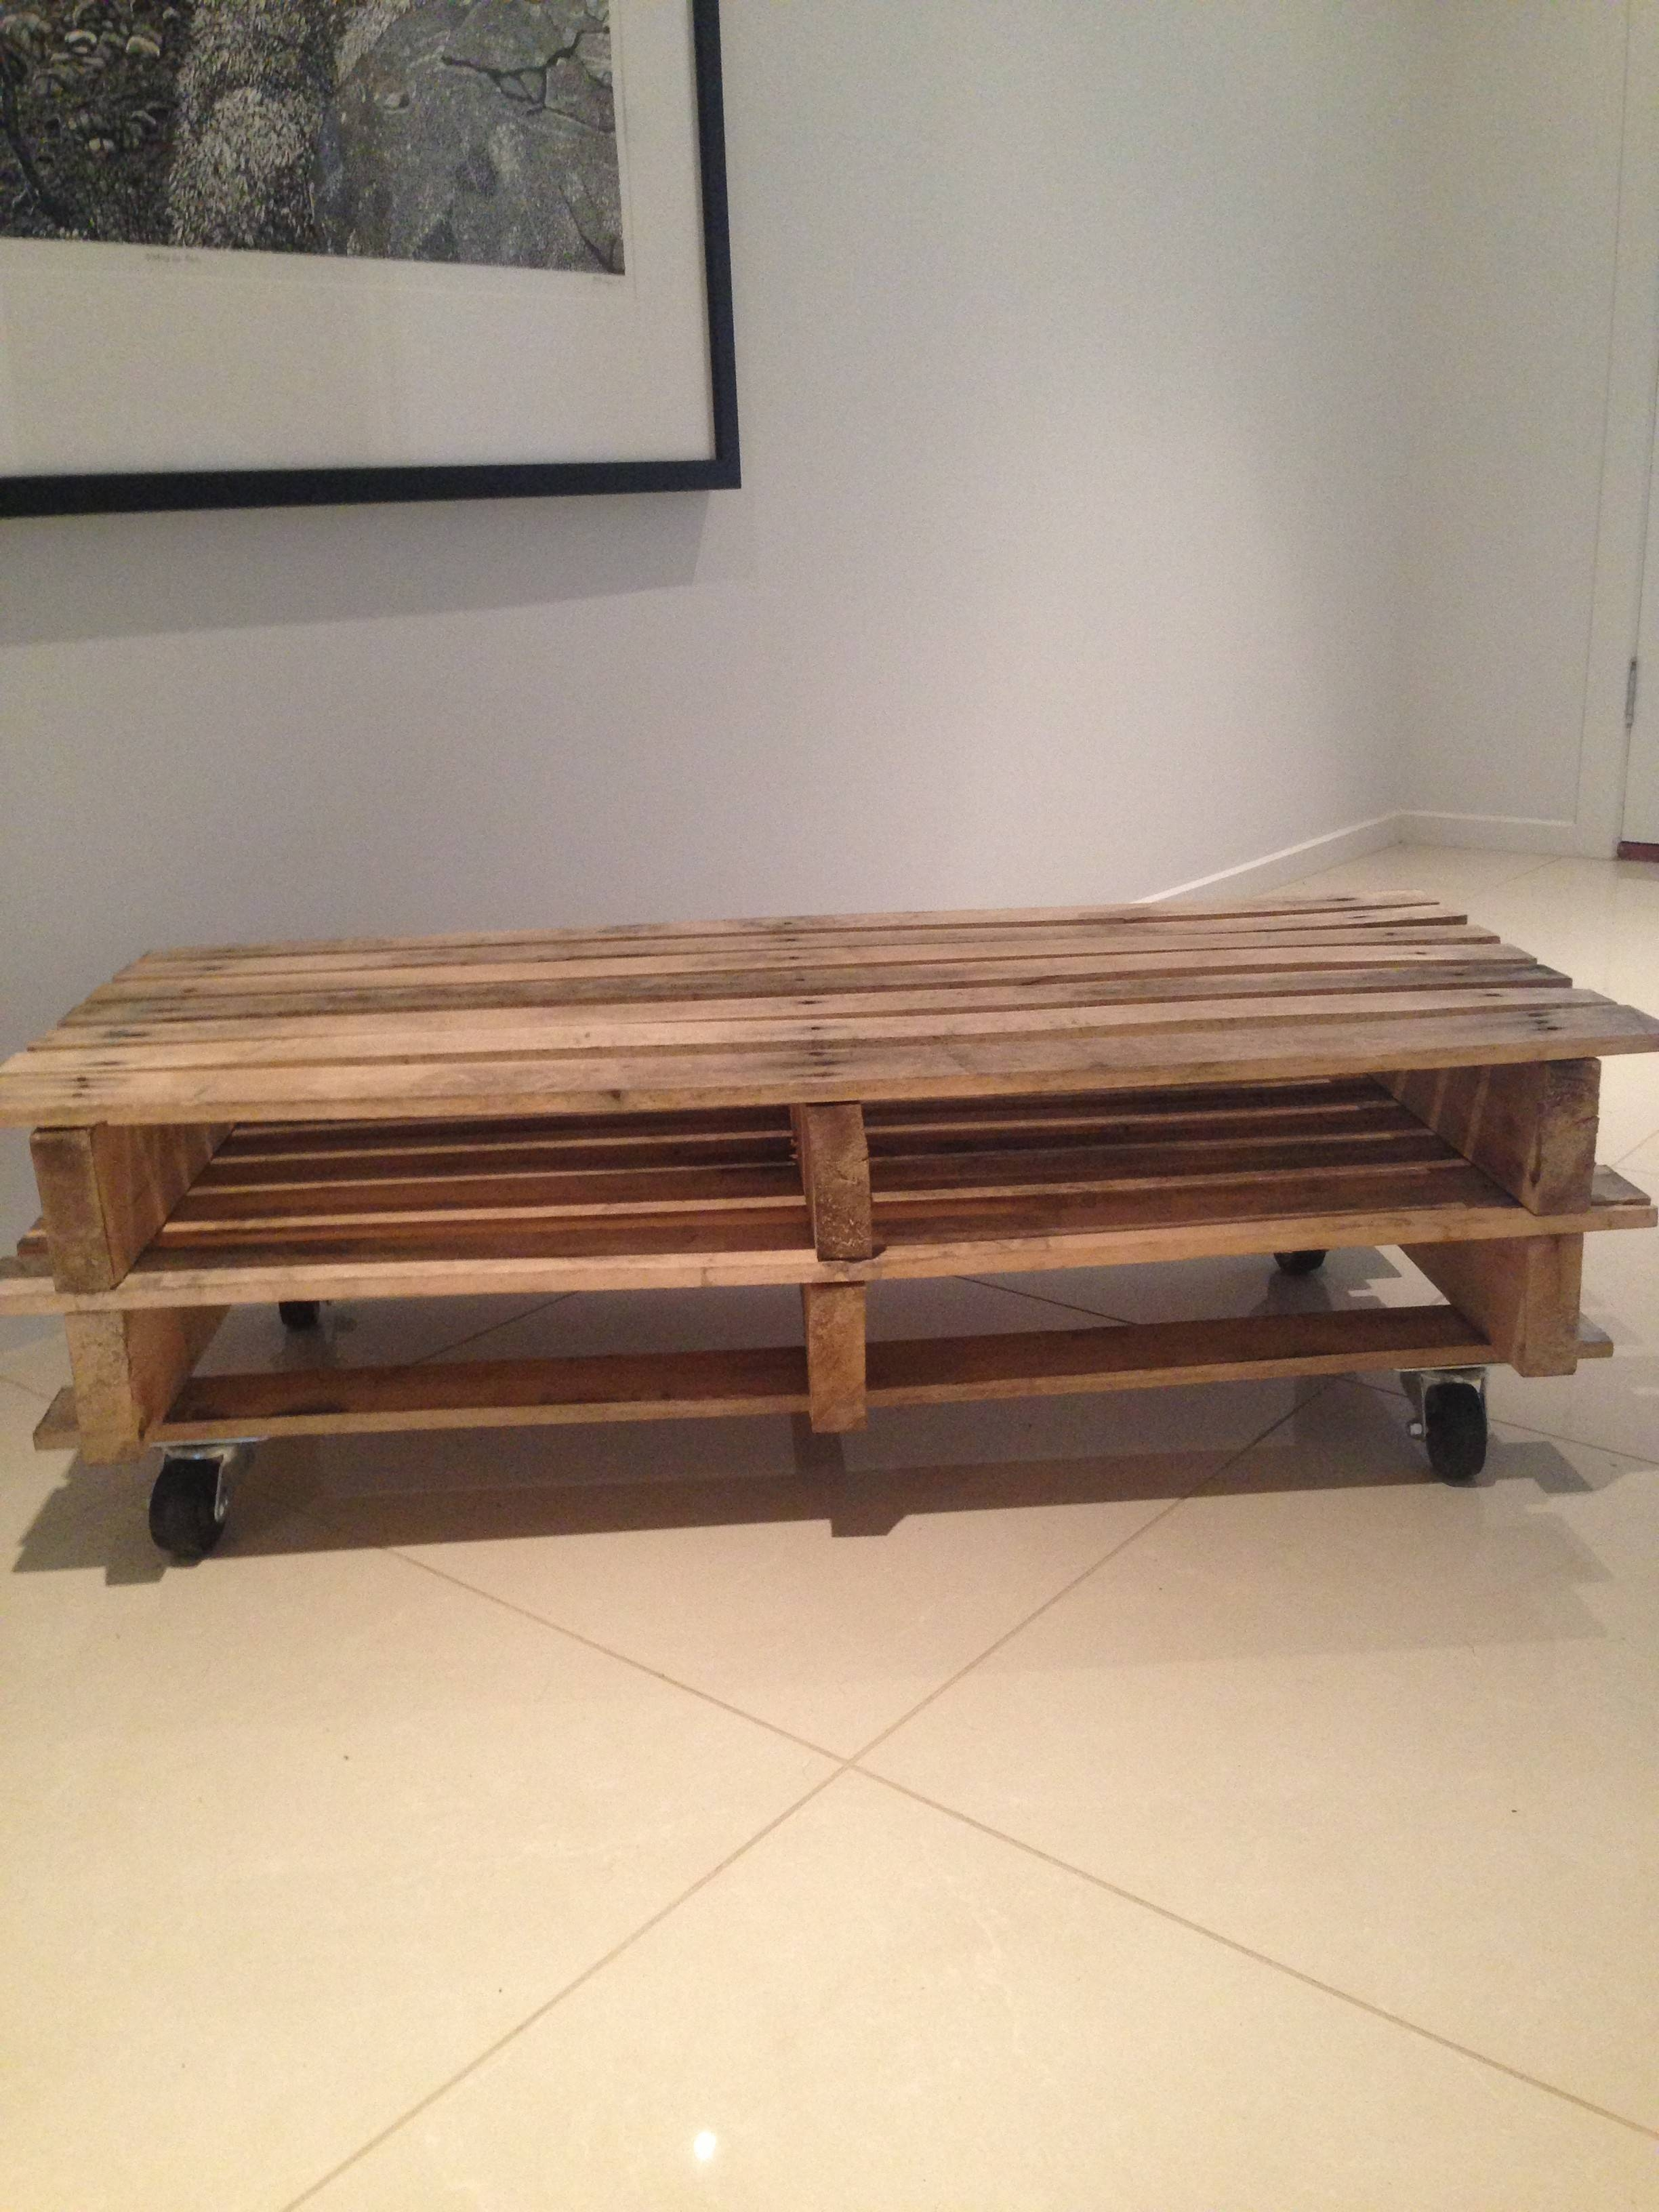 Rustic Coffee Table With Wheels - Worldtipitaka regarding Rustic Coffee Table With Wheels (Image 24 of 30)